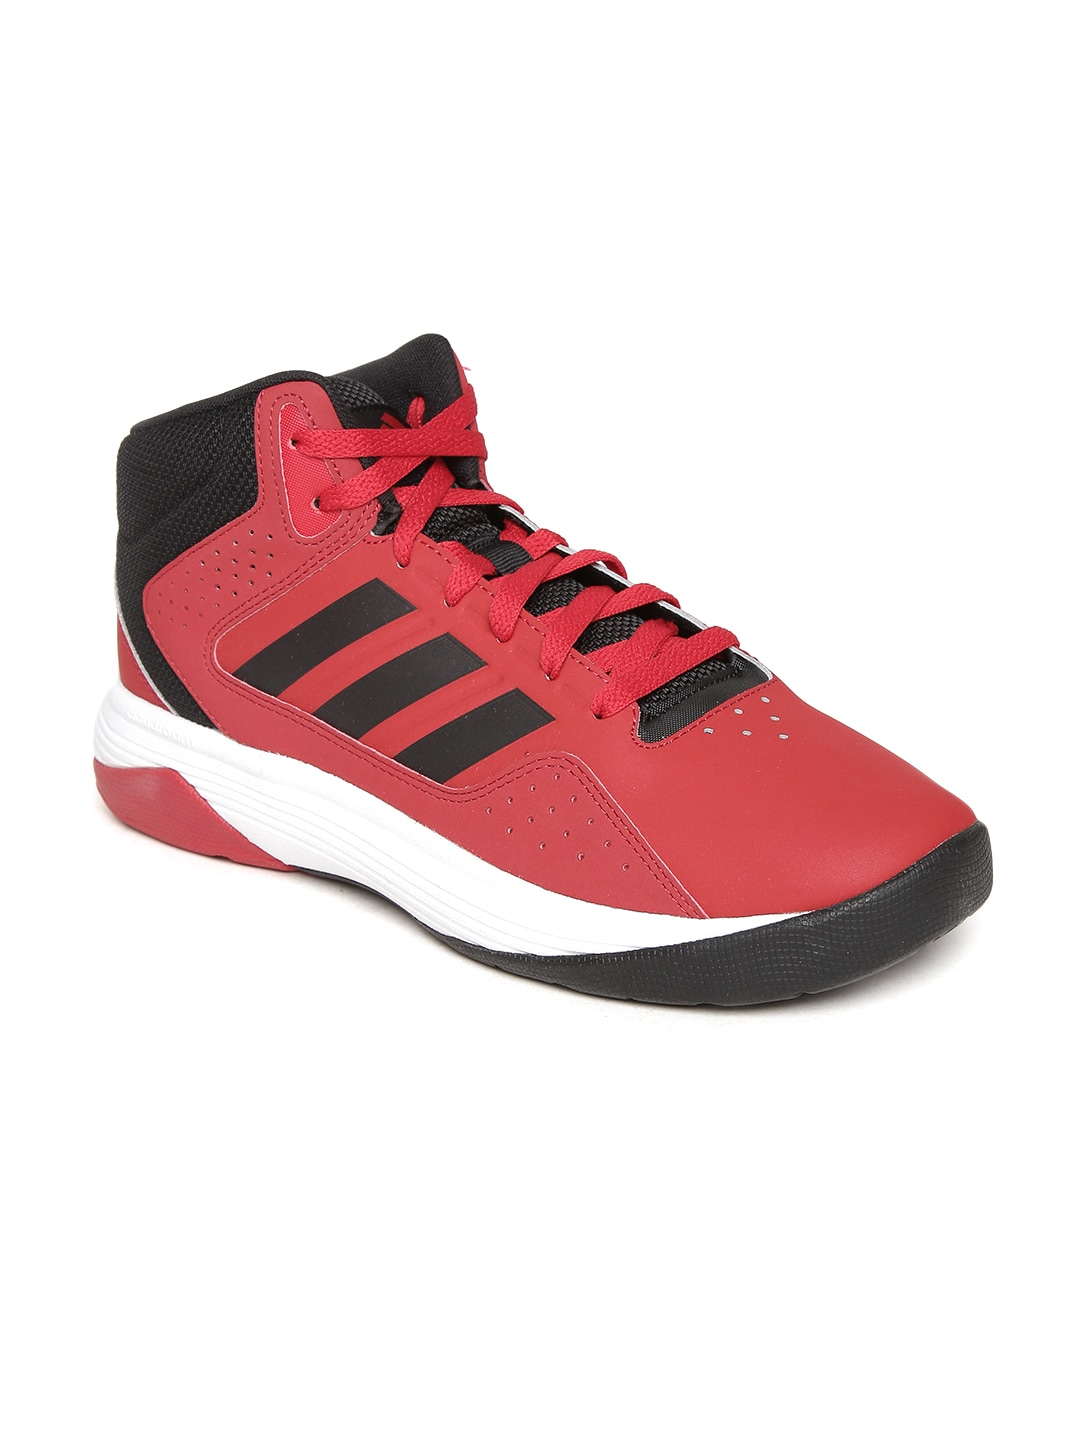 bfdc6c75e33db Red Sport Shoes - Buy Red Sport Shoes online in India